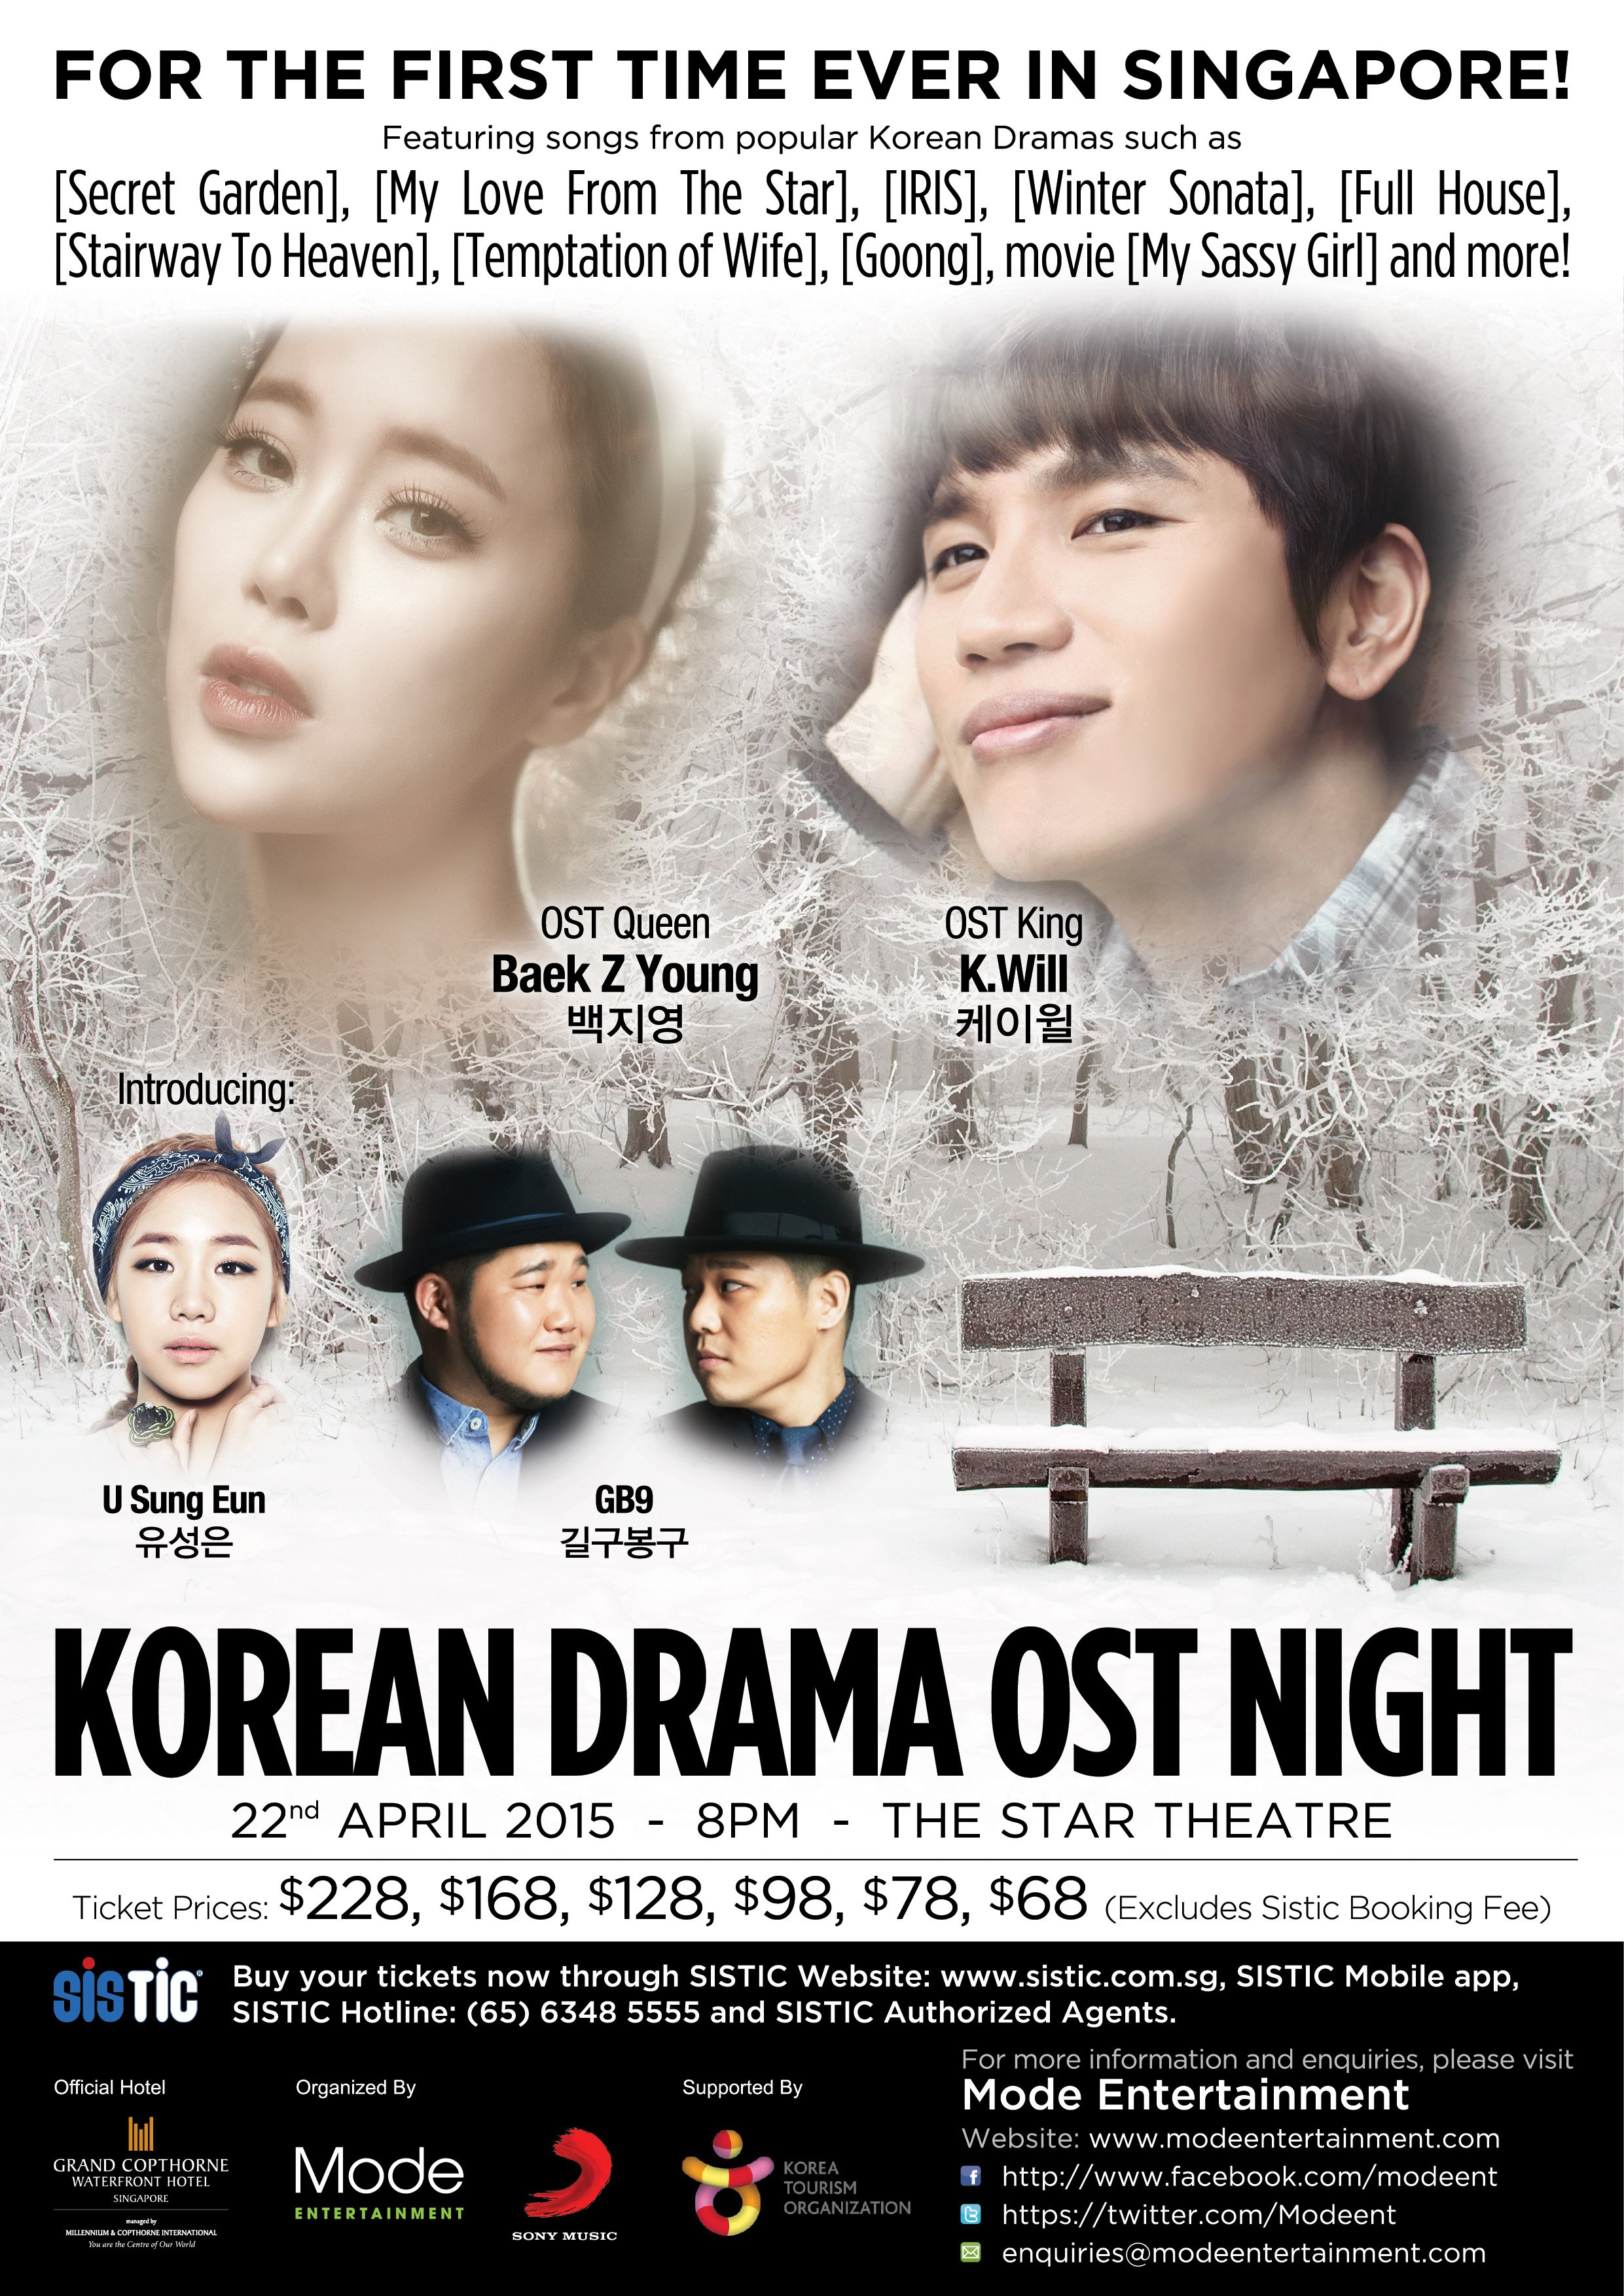 UPCOMING EVENT] Baek Ji Young and K Will to headline first